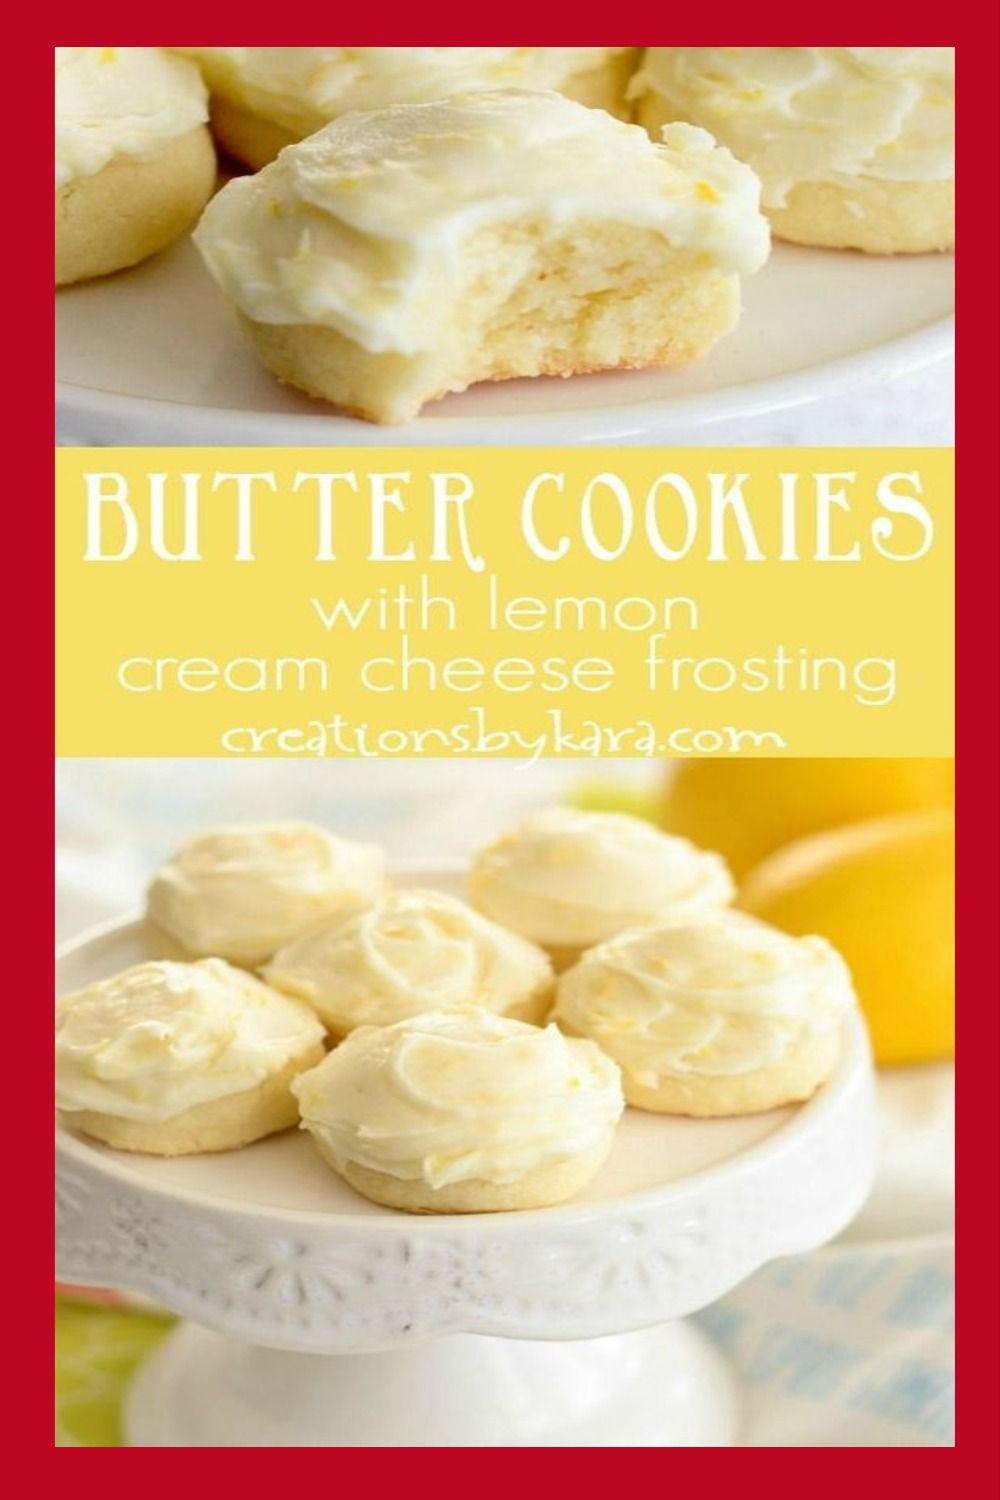 Recipe for Butter cookies with lemon cream cheese frosting ...